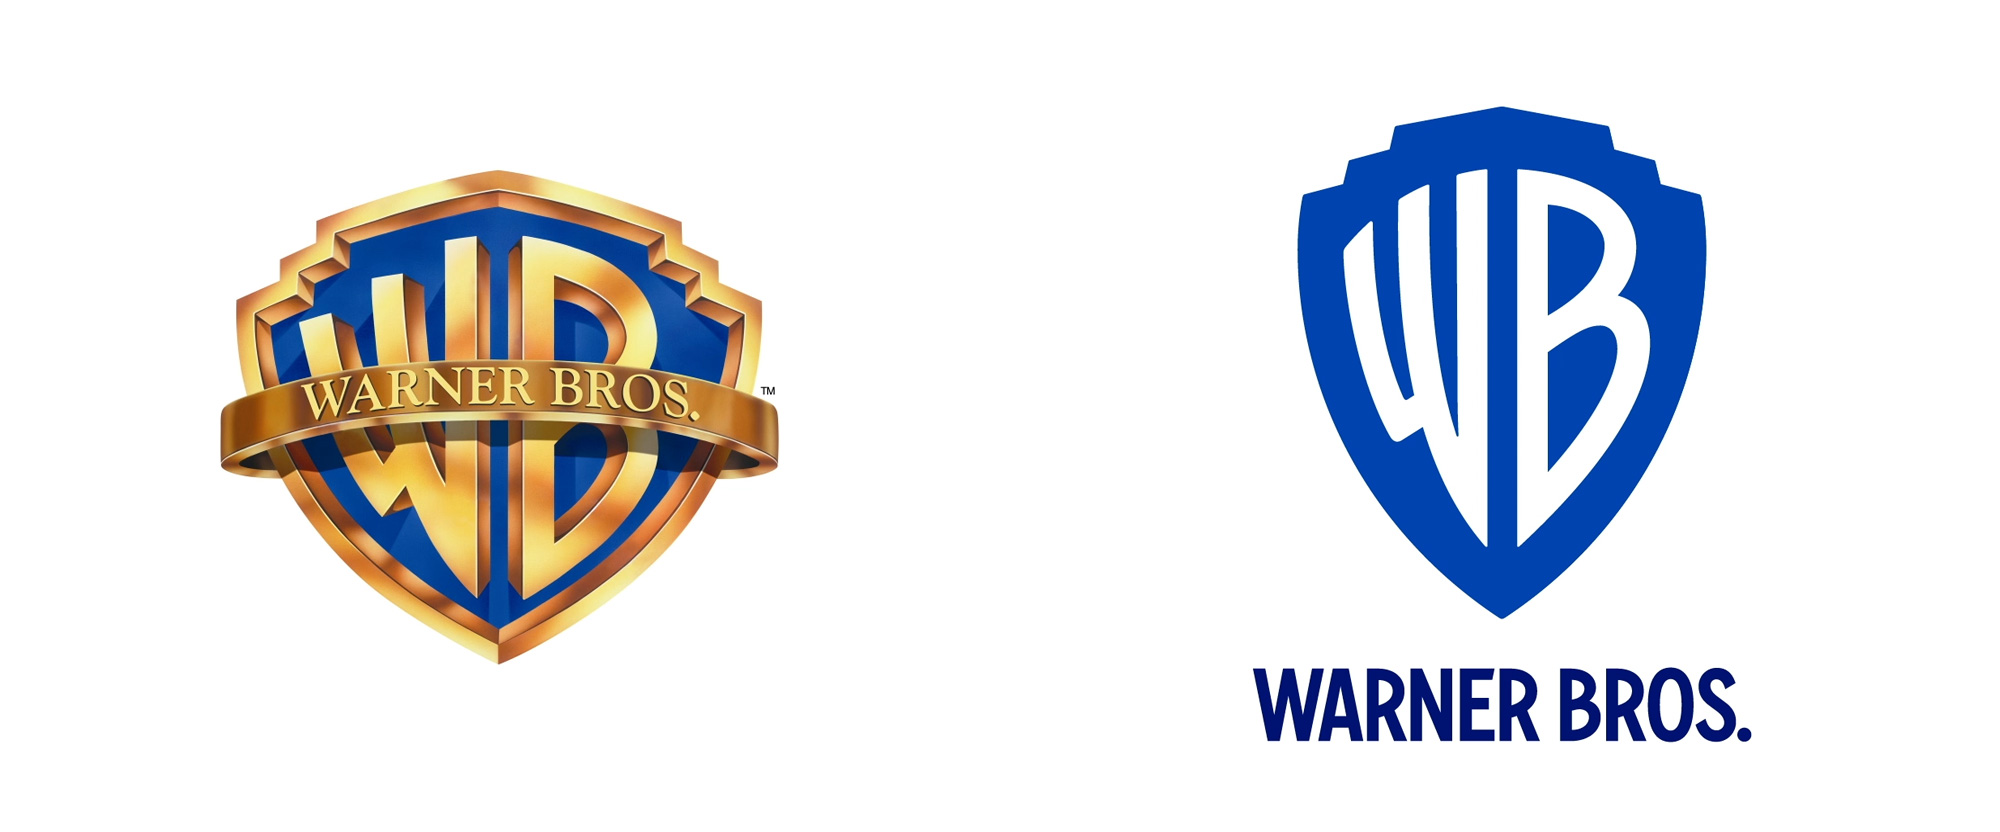 Brand New: New Logo and Identity for Warner Bros. by Pentagram.